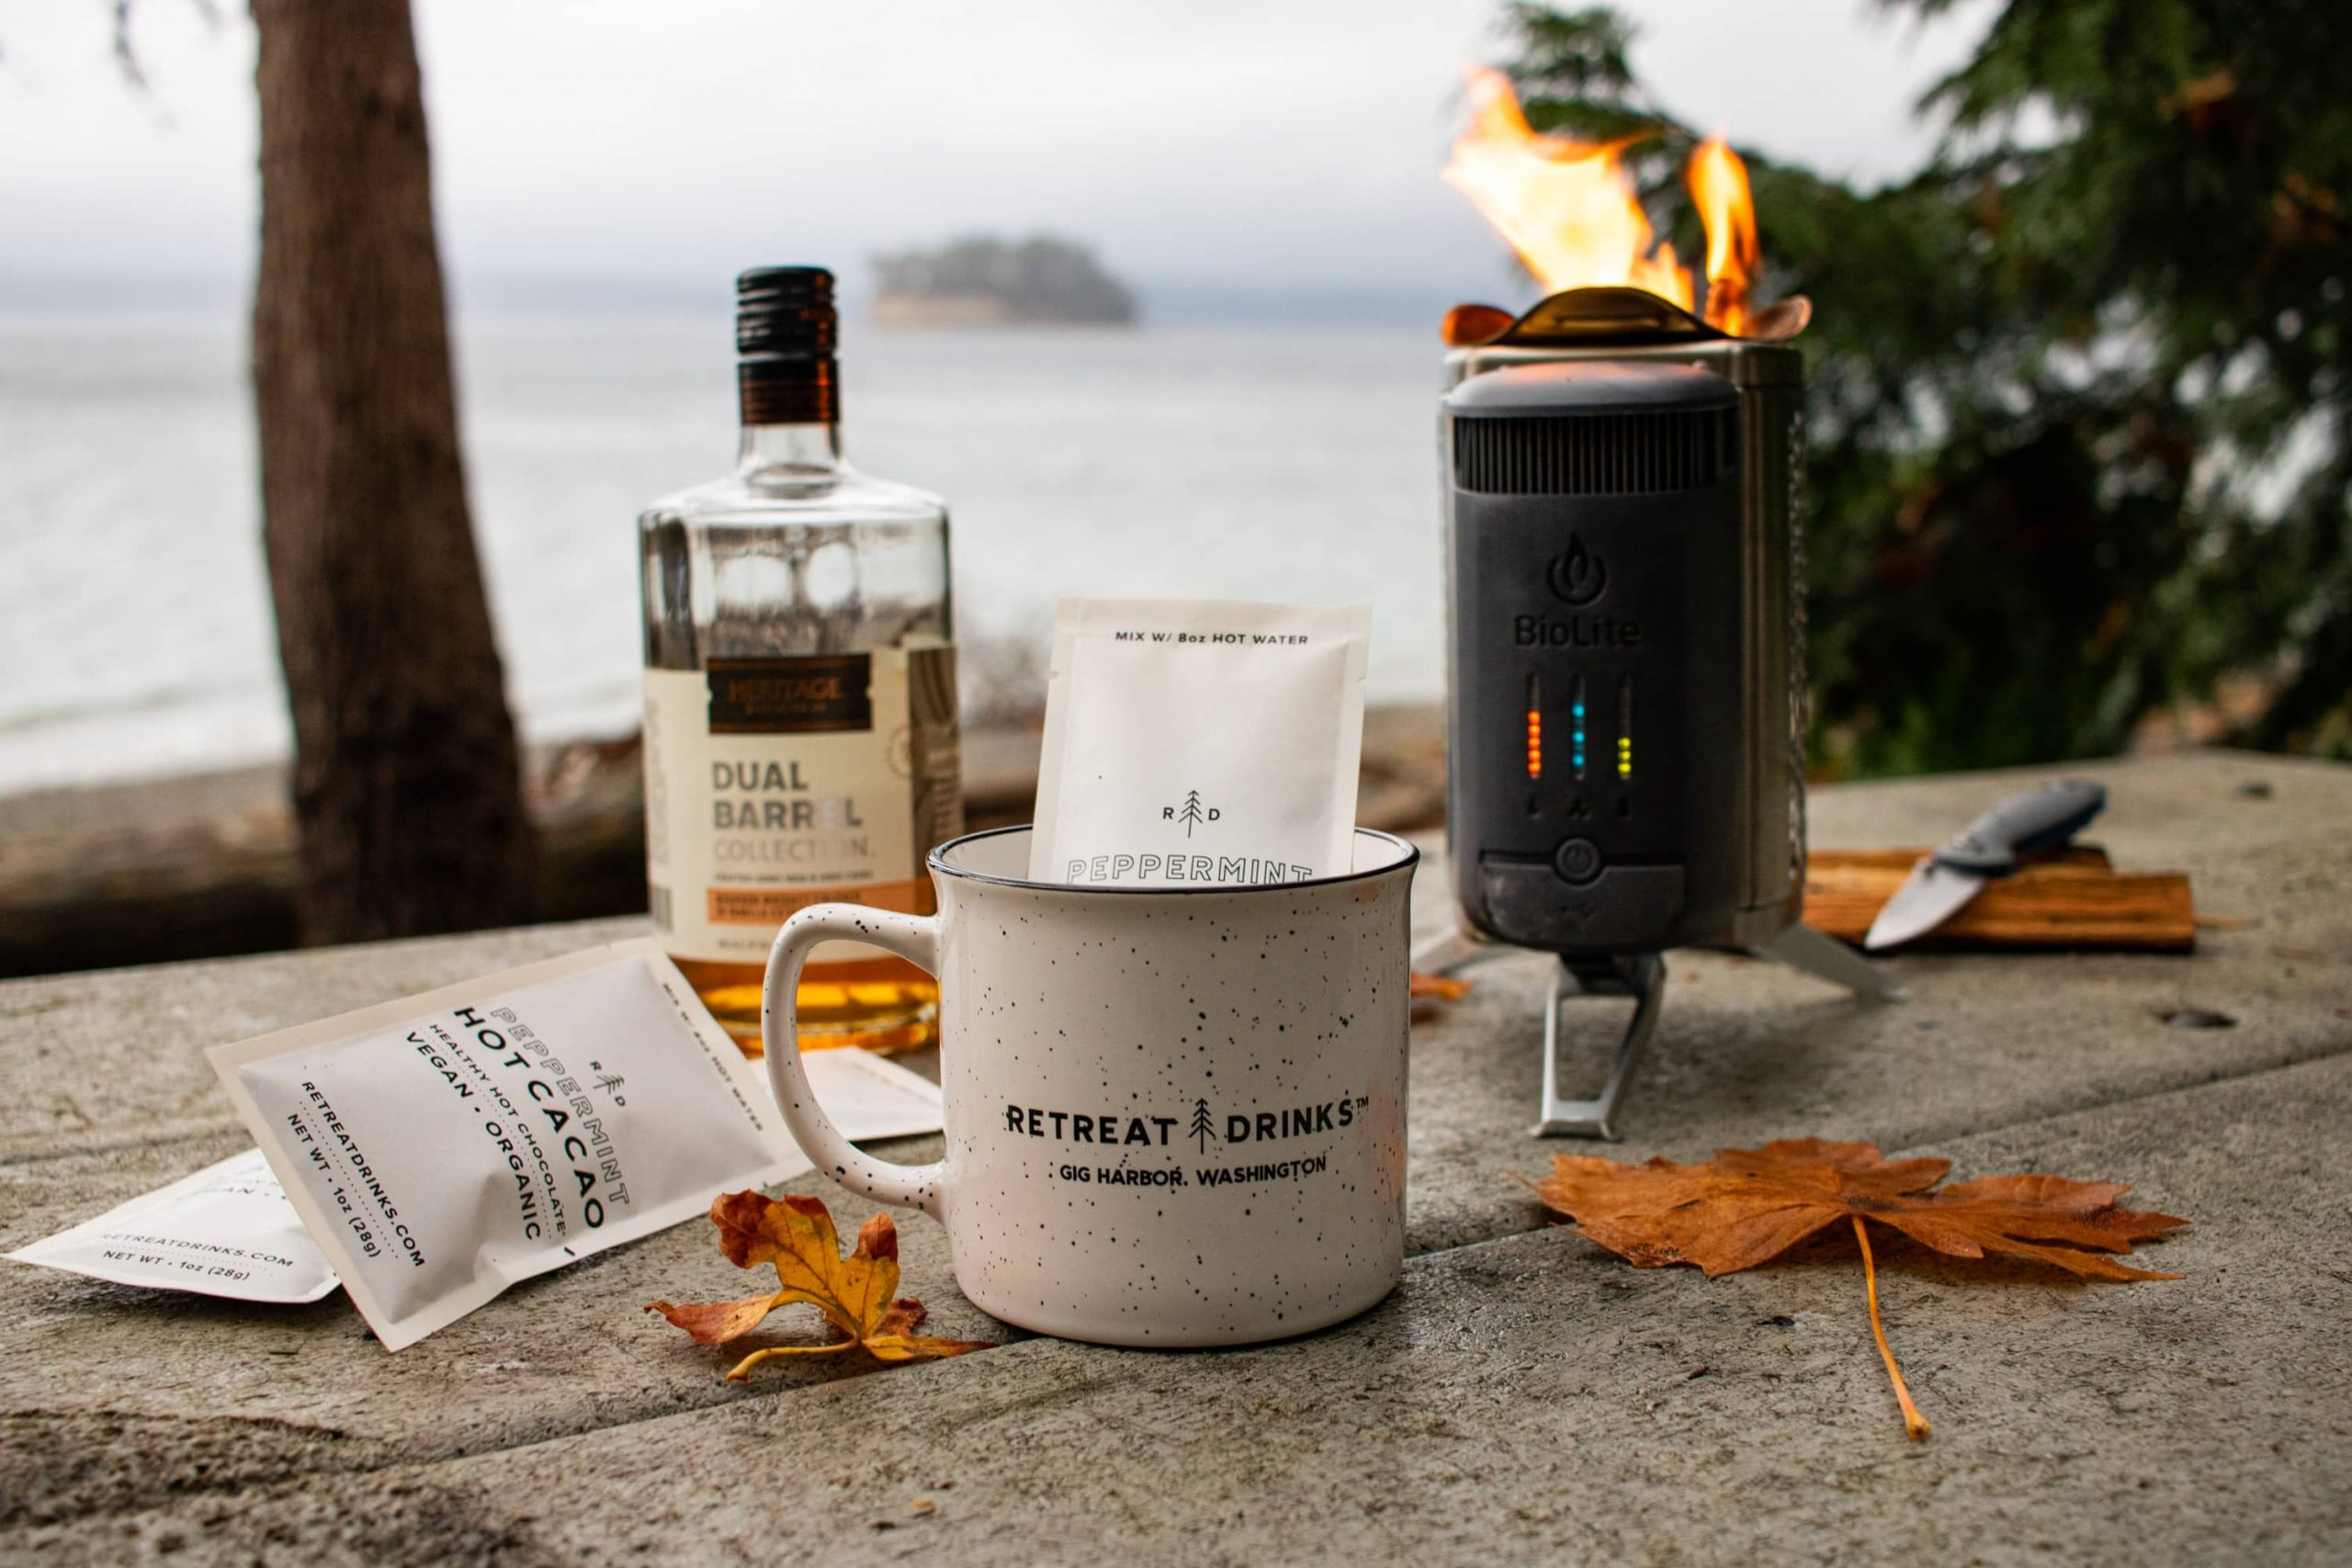 A Retreat Drinks mug with packs of peppermint on table on the shores of Puget Sound